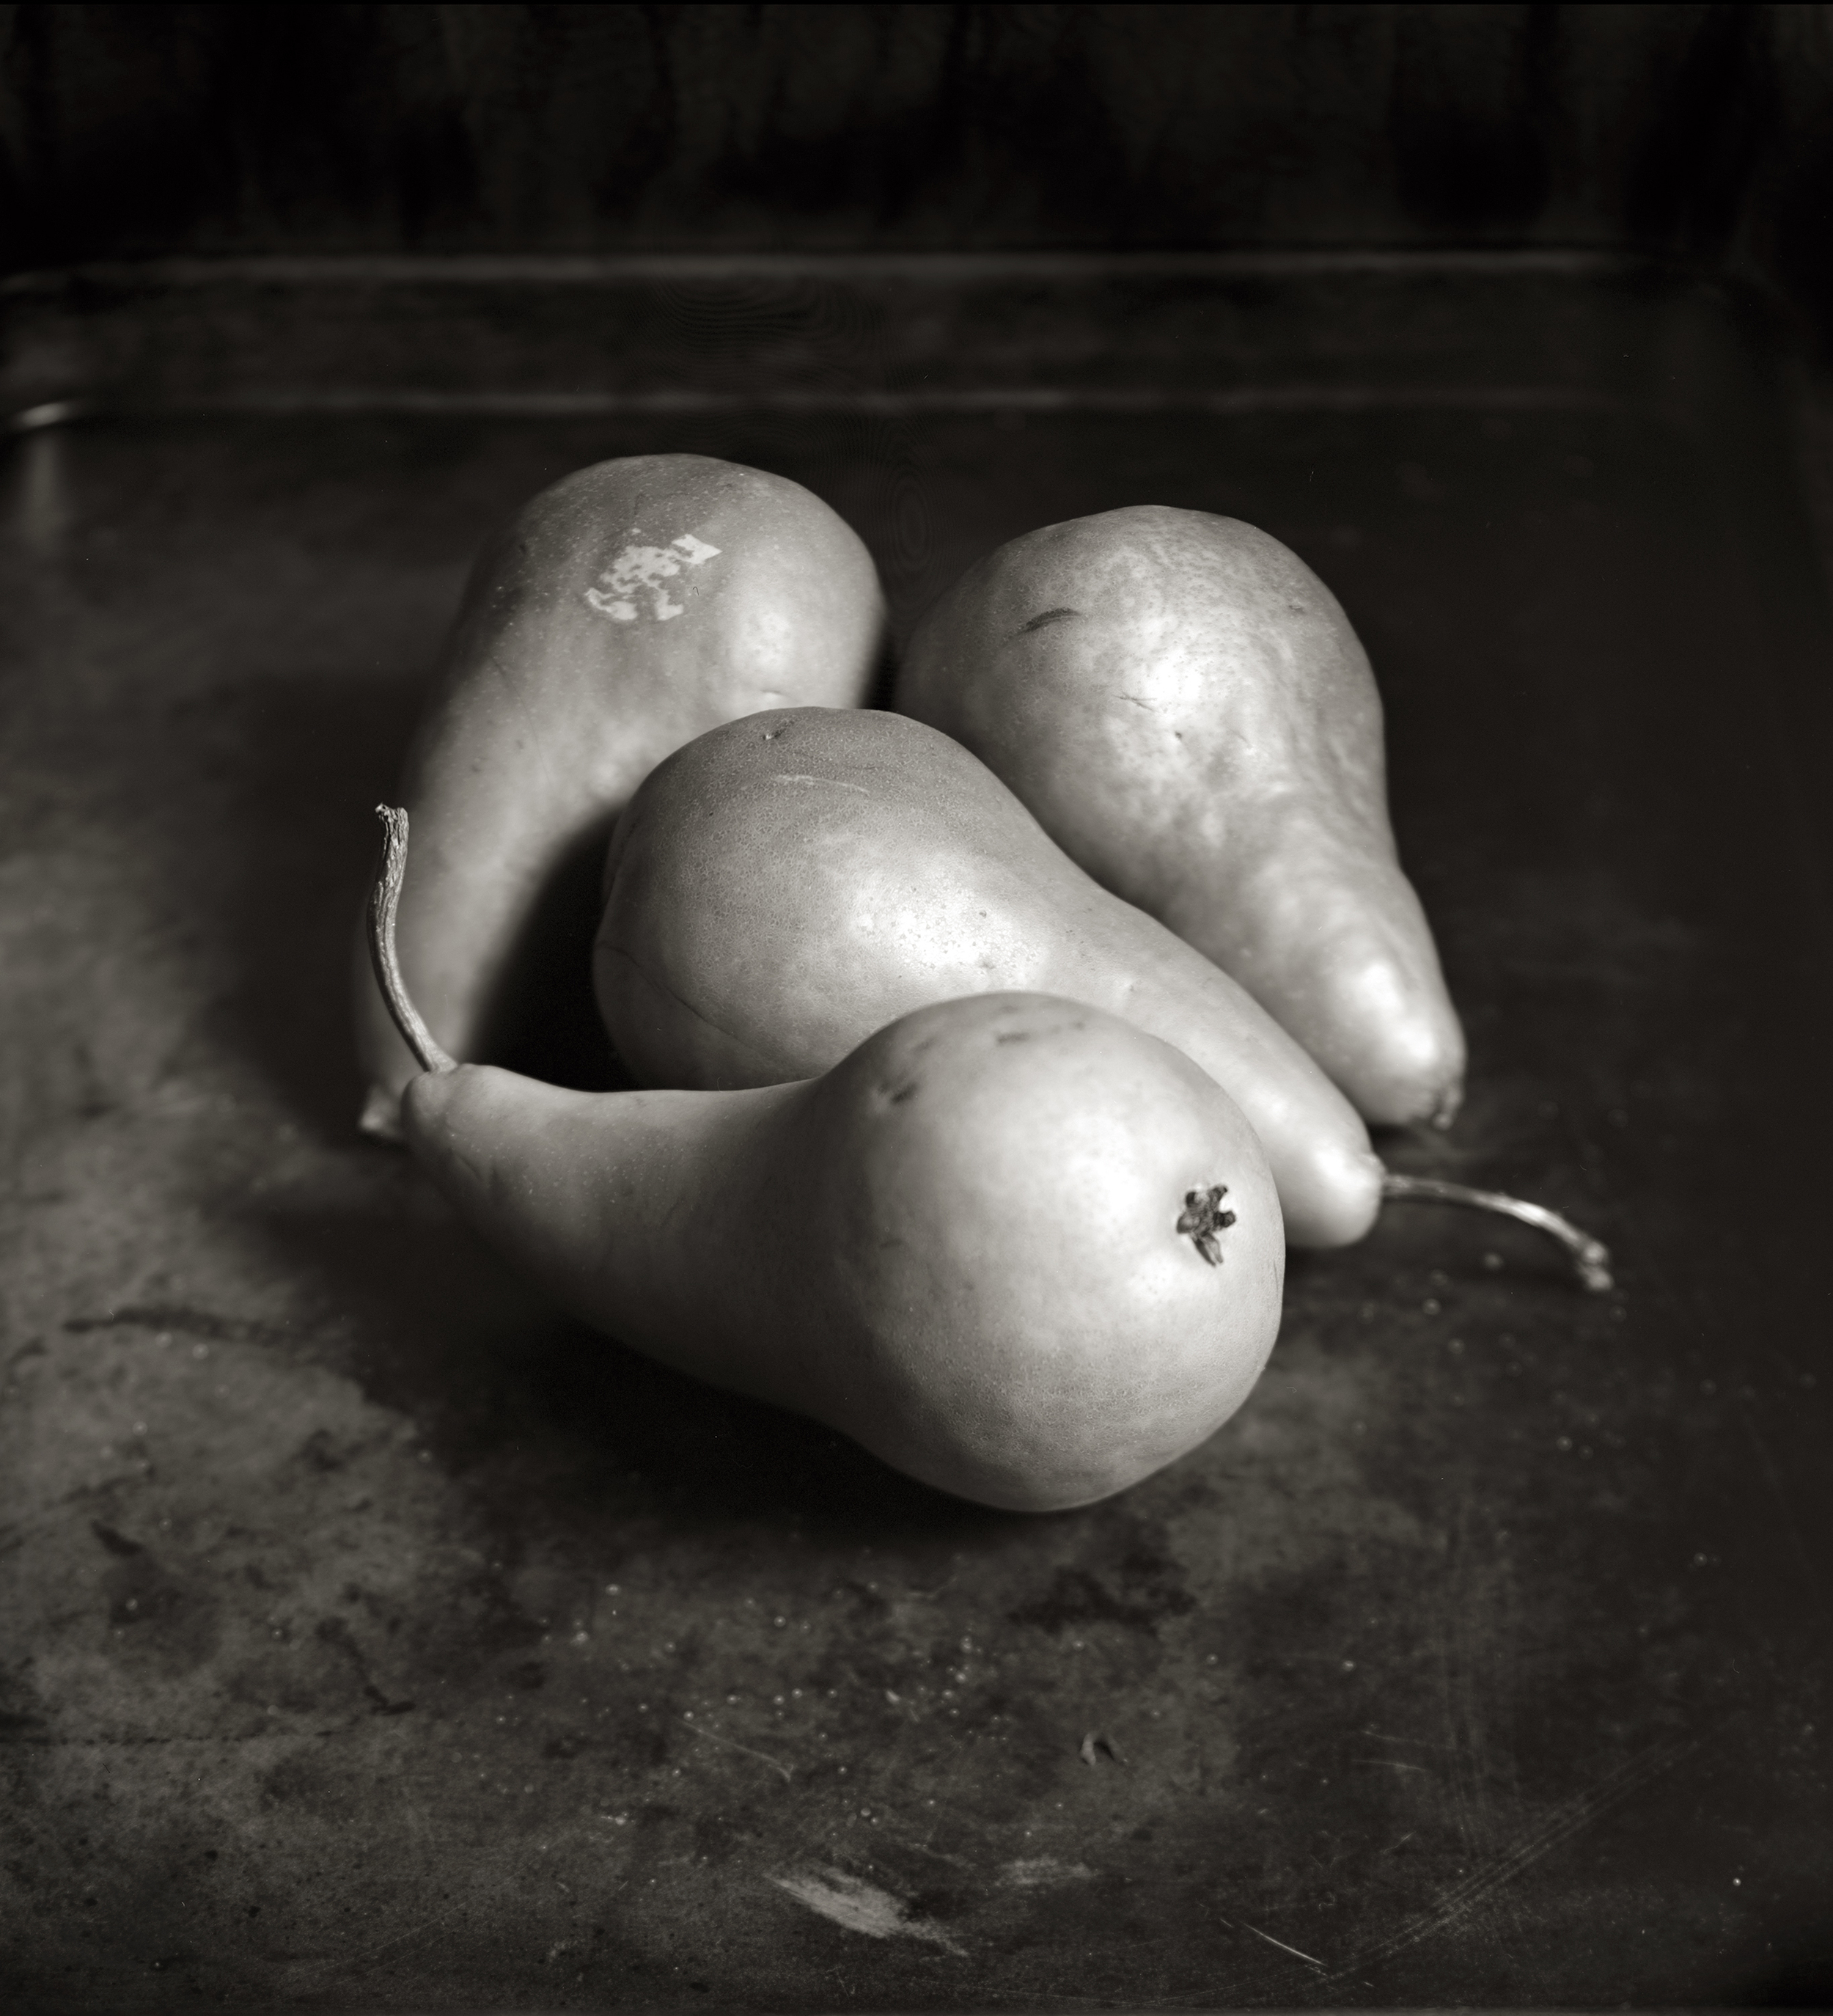 PEARS, SCAR FROM A LABEL